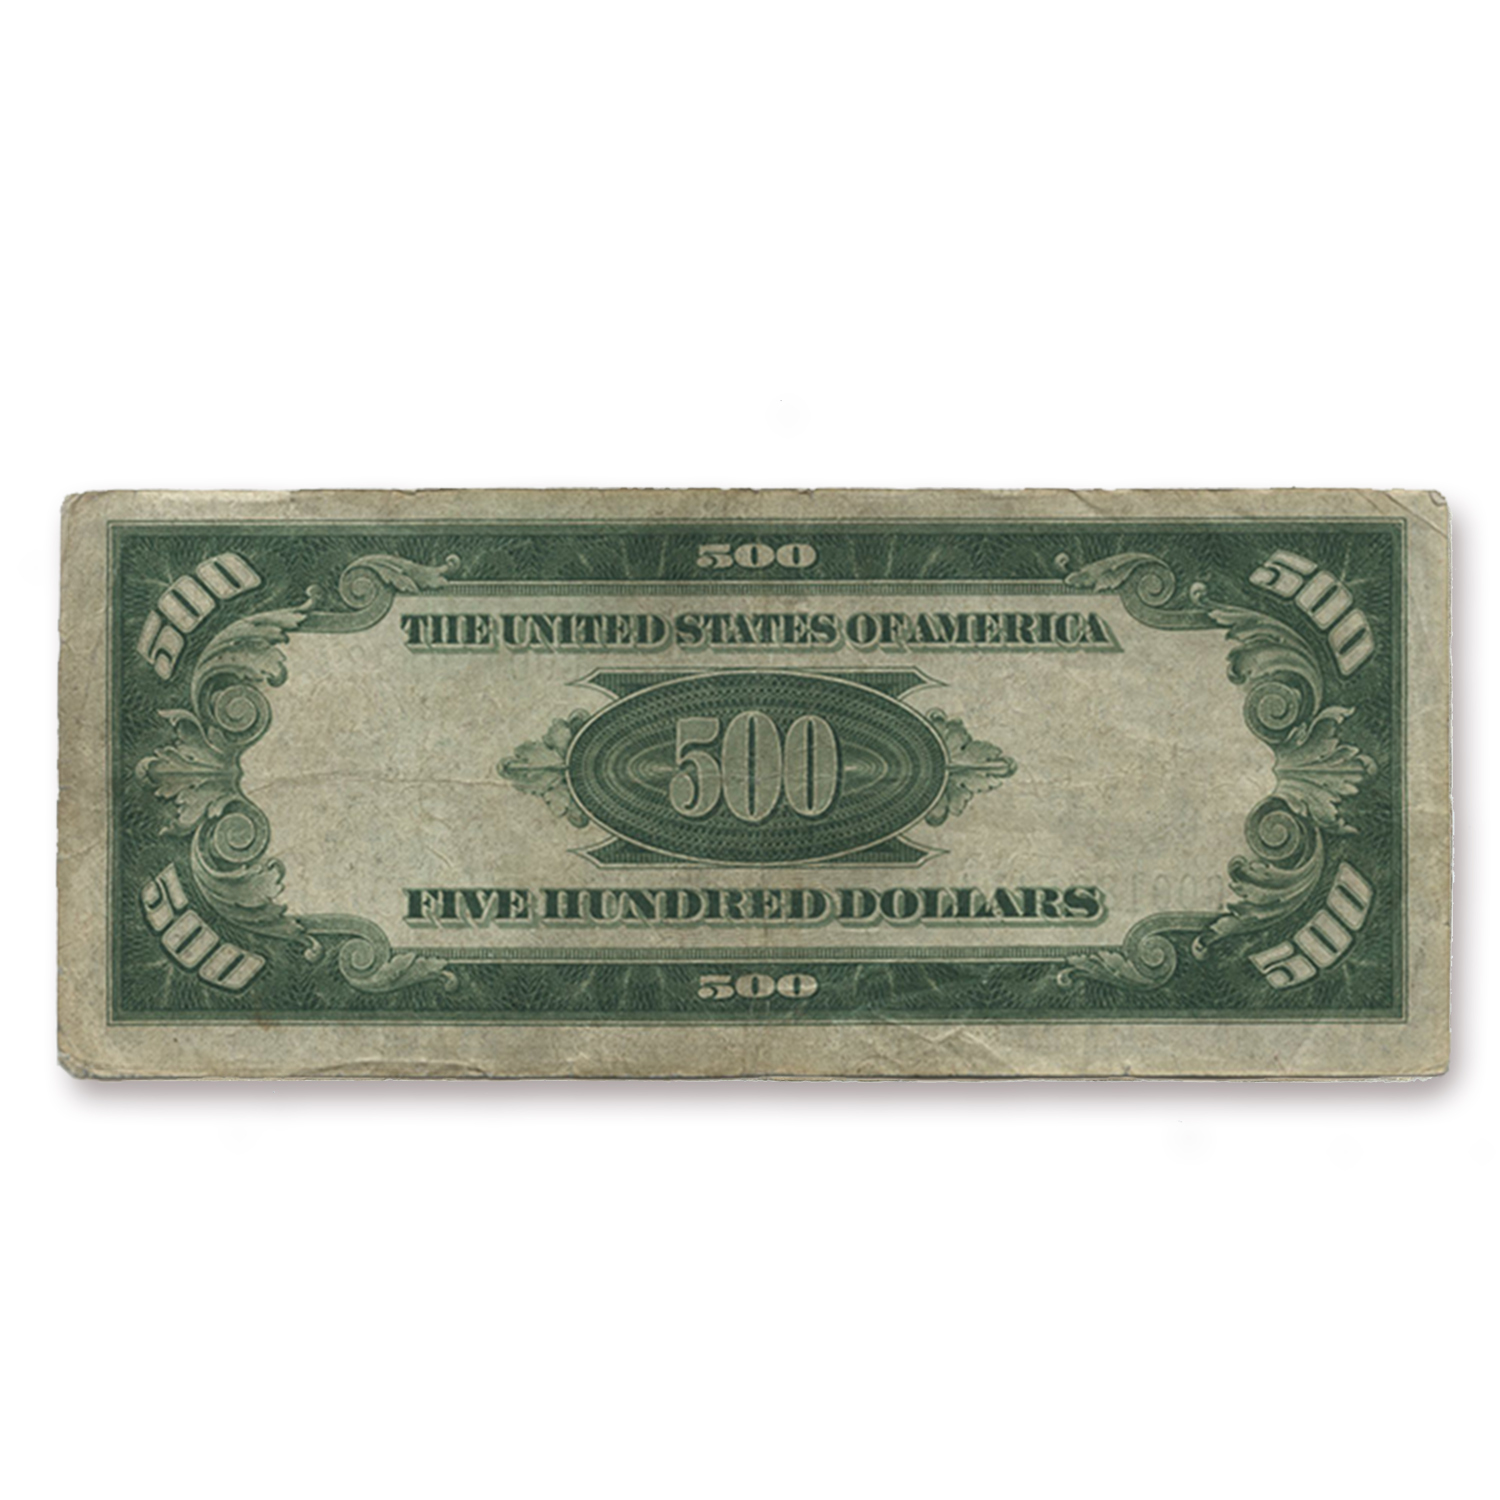 1934 (G-Chicago) $500 FRN (Fine)